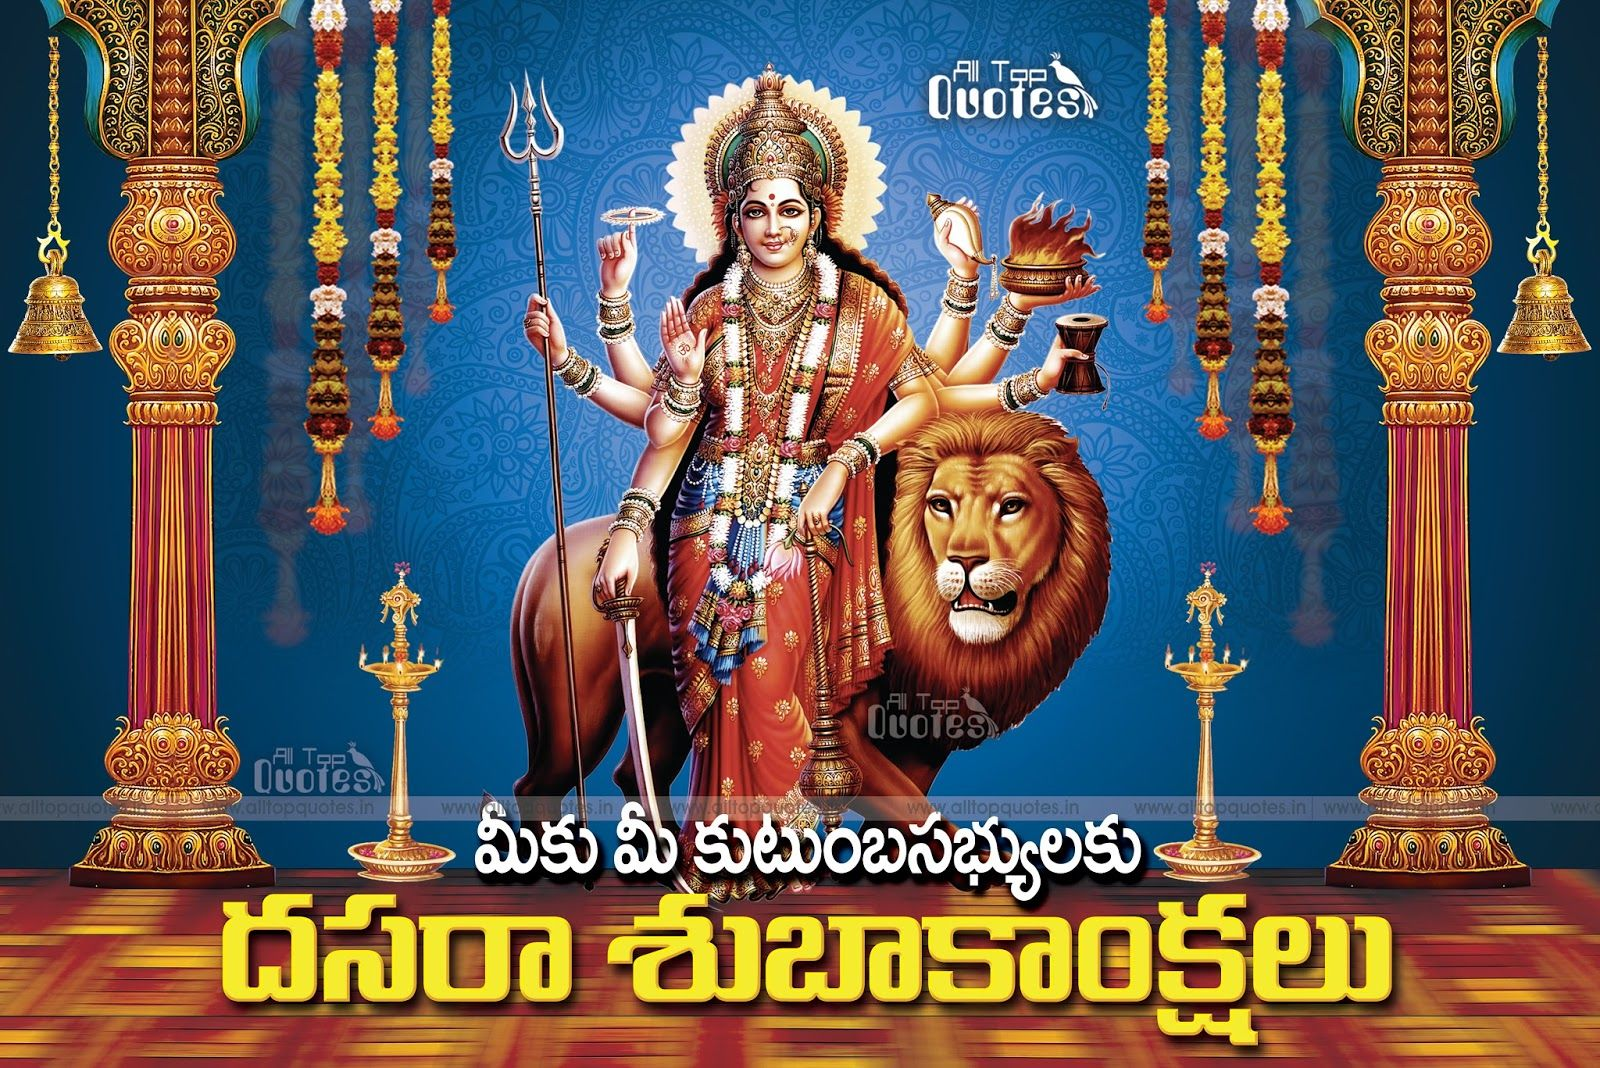 Happy dussehra telugu quotes greetings and wishes in telugu font happy dussehra telugu quotes greetings and wishes in telugu font all top quotes telugu quotes english quotes hindi quotes m4hsunfo